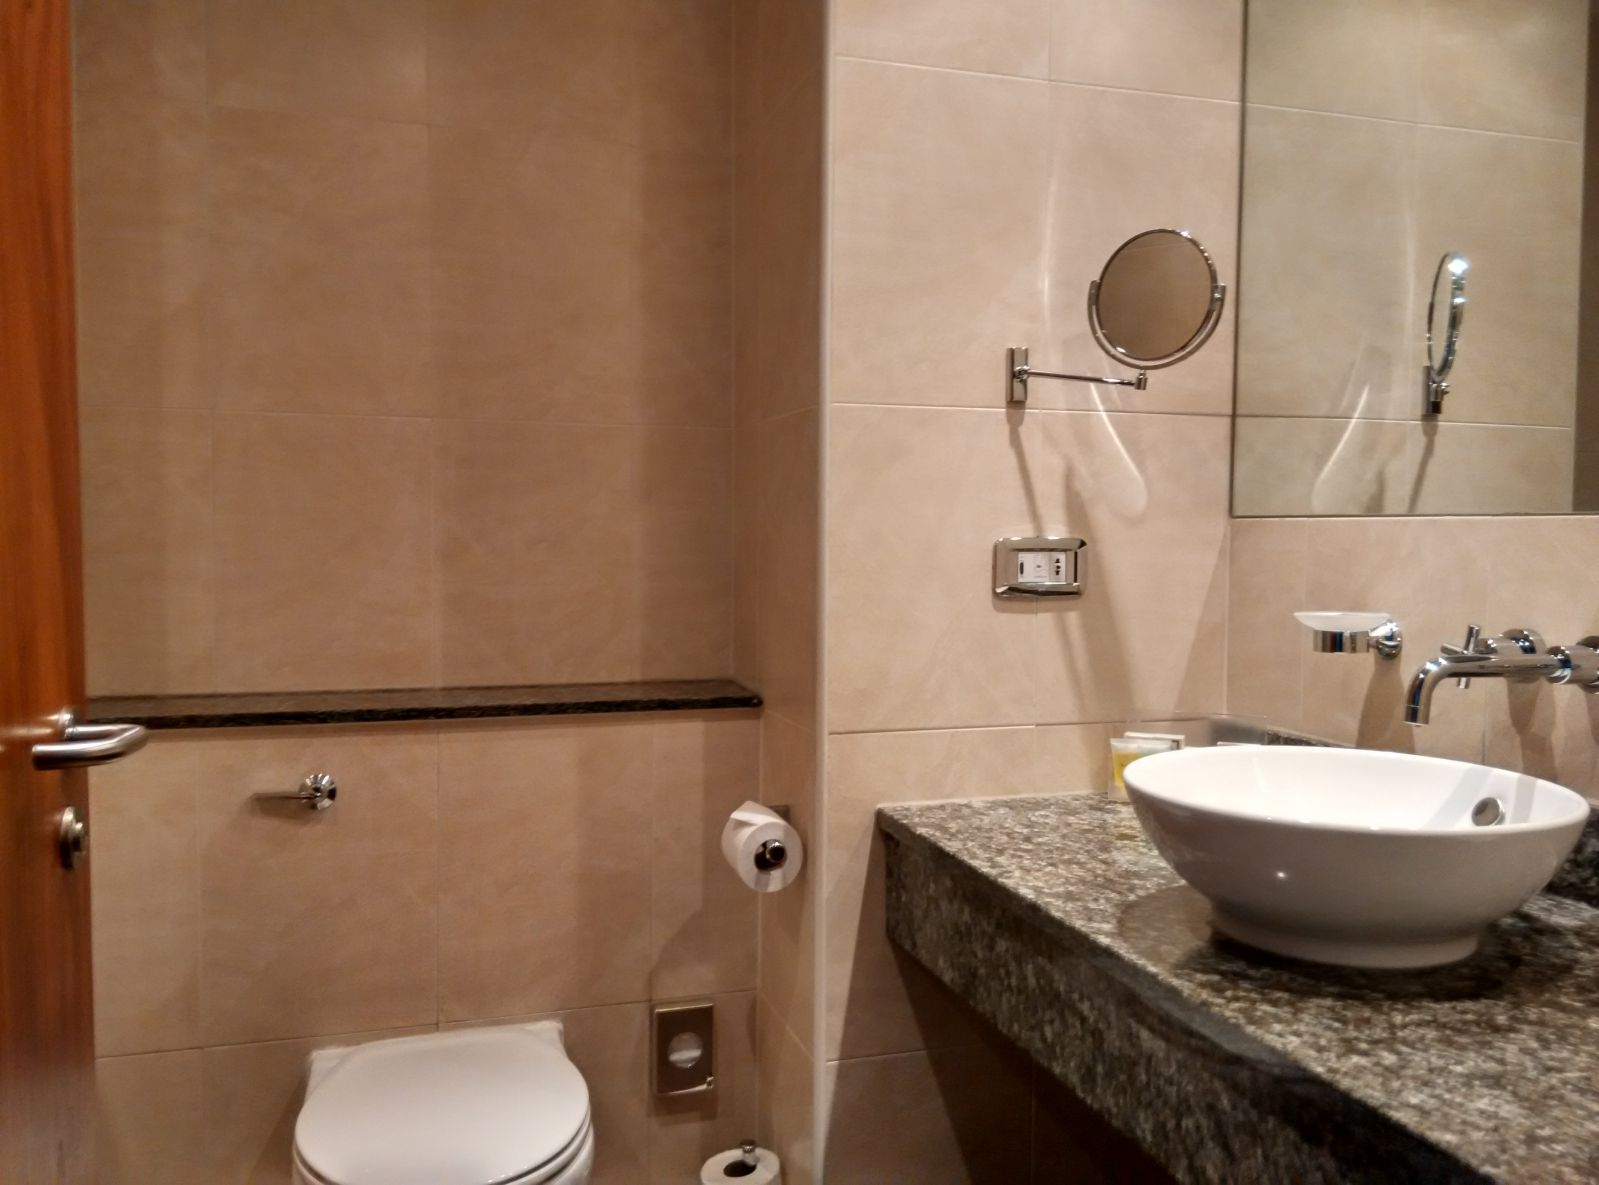 holiday-inn-norwich-city-bathroom-1